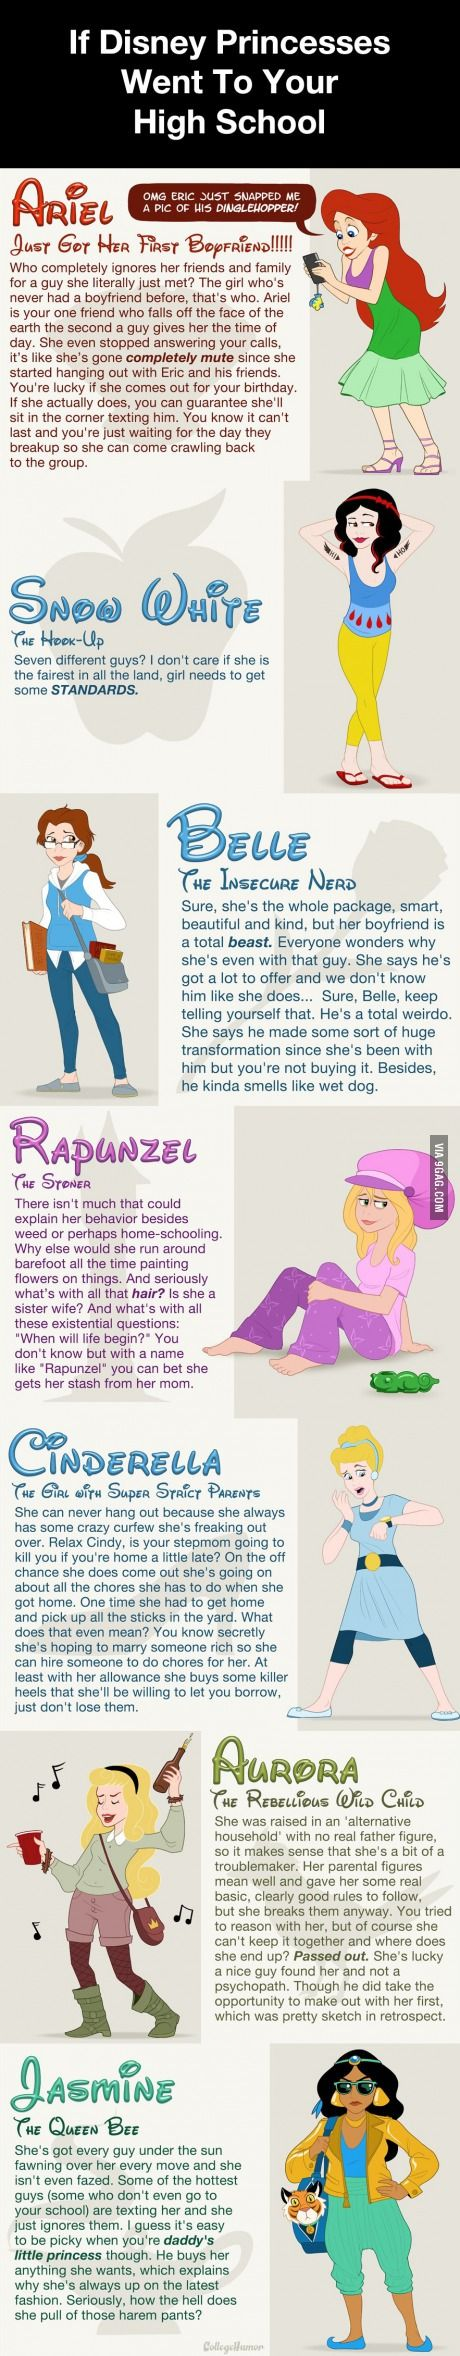 If Disney Princesses Went To Your High School.....hahahahah!!!! Rupunzel a sisiter wife?!? Hahaha! Love the Mean girls reference with Jasmine too! HA!!!